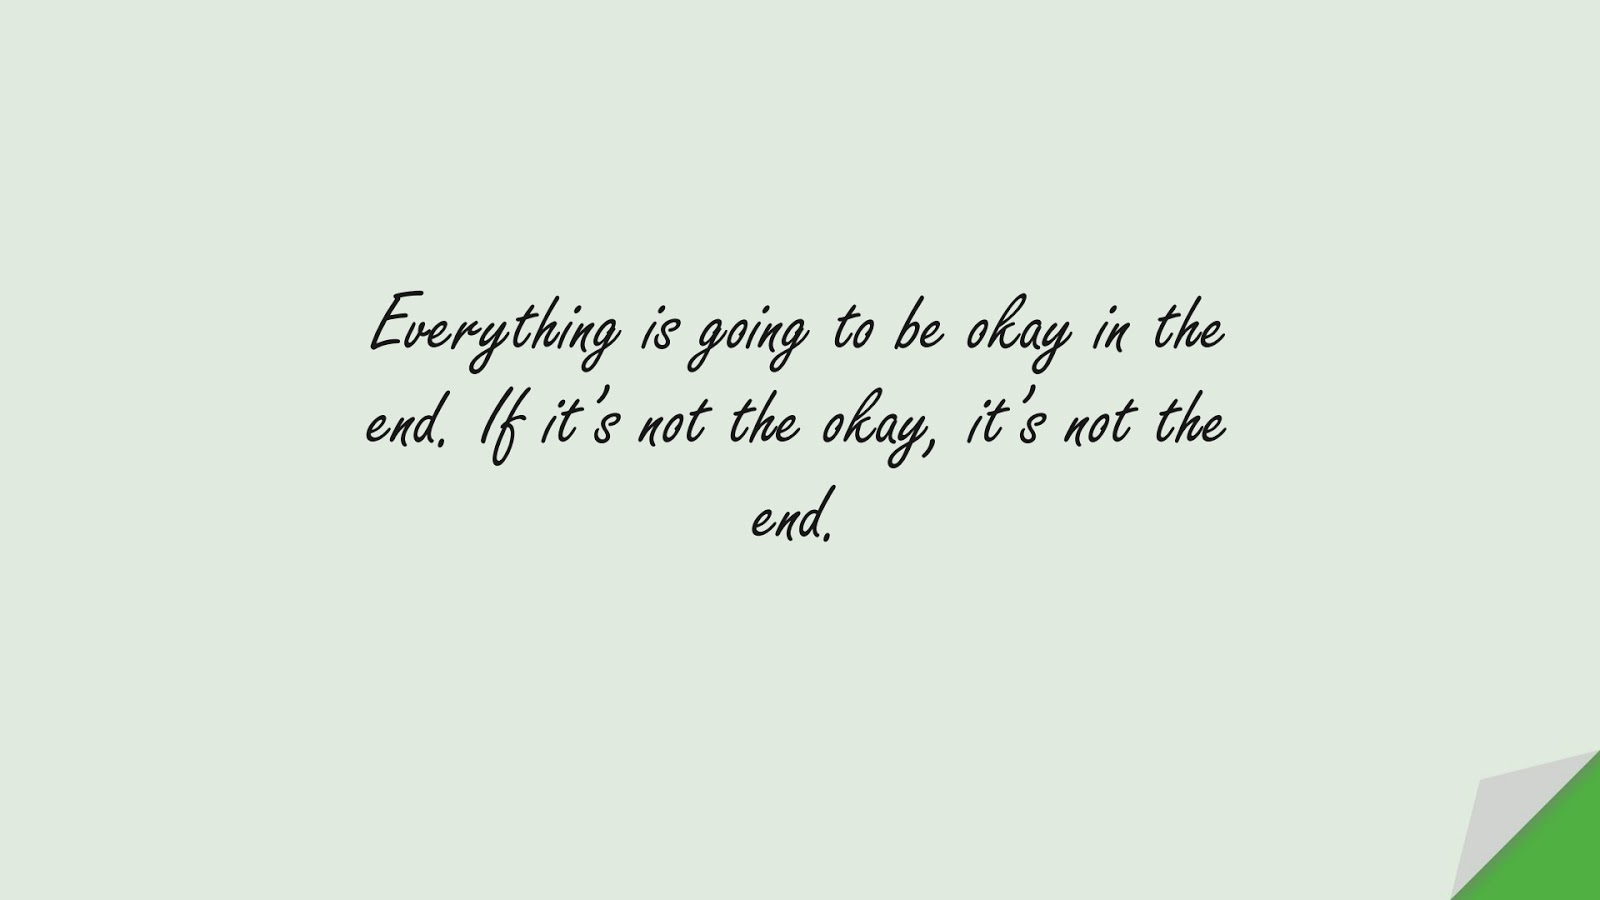 Everything is going to be okay in the end. If it's not the okay, it's not the end.FALSE